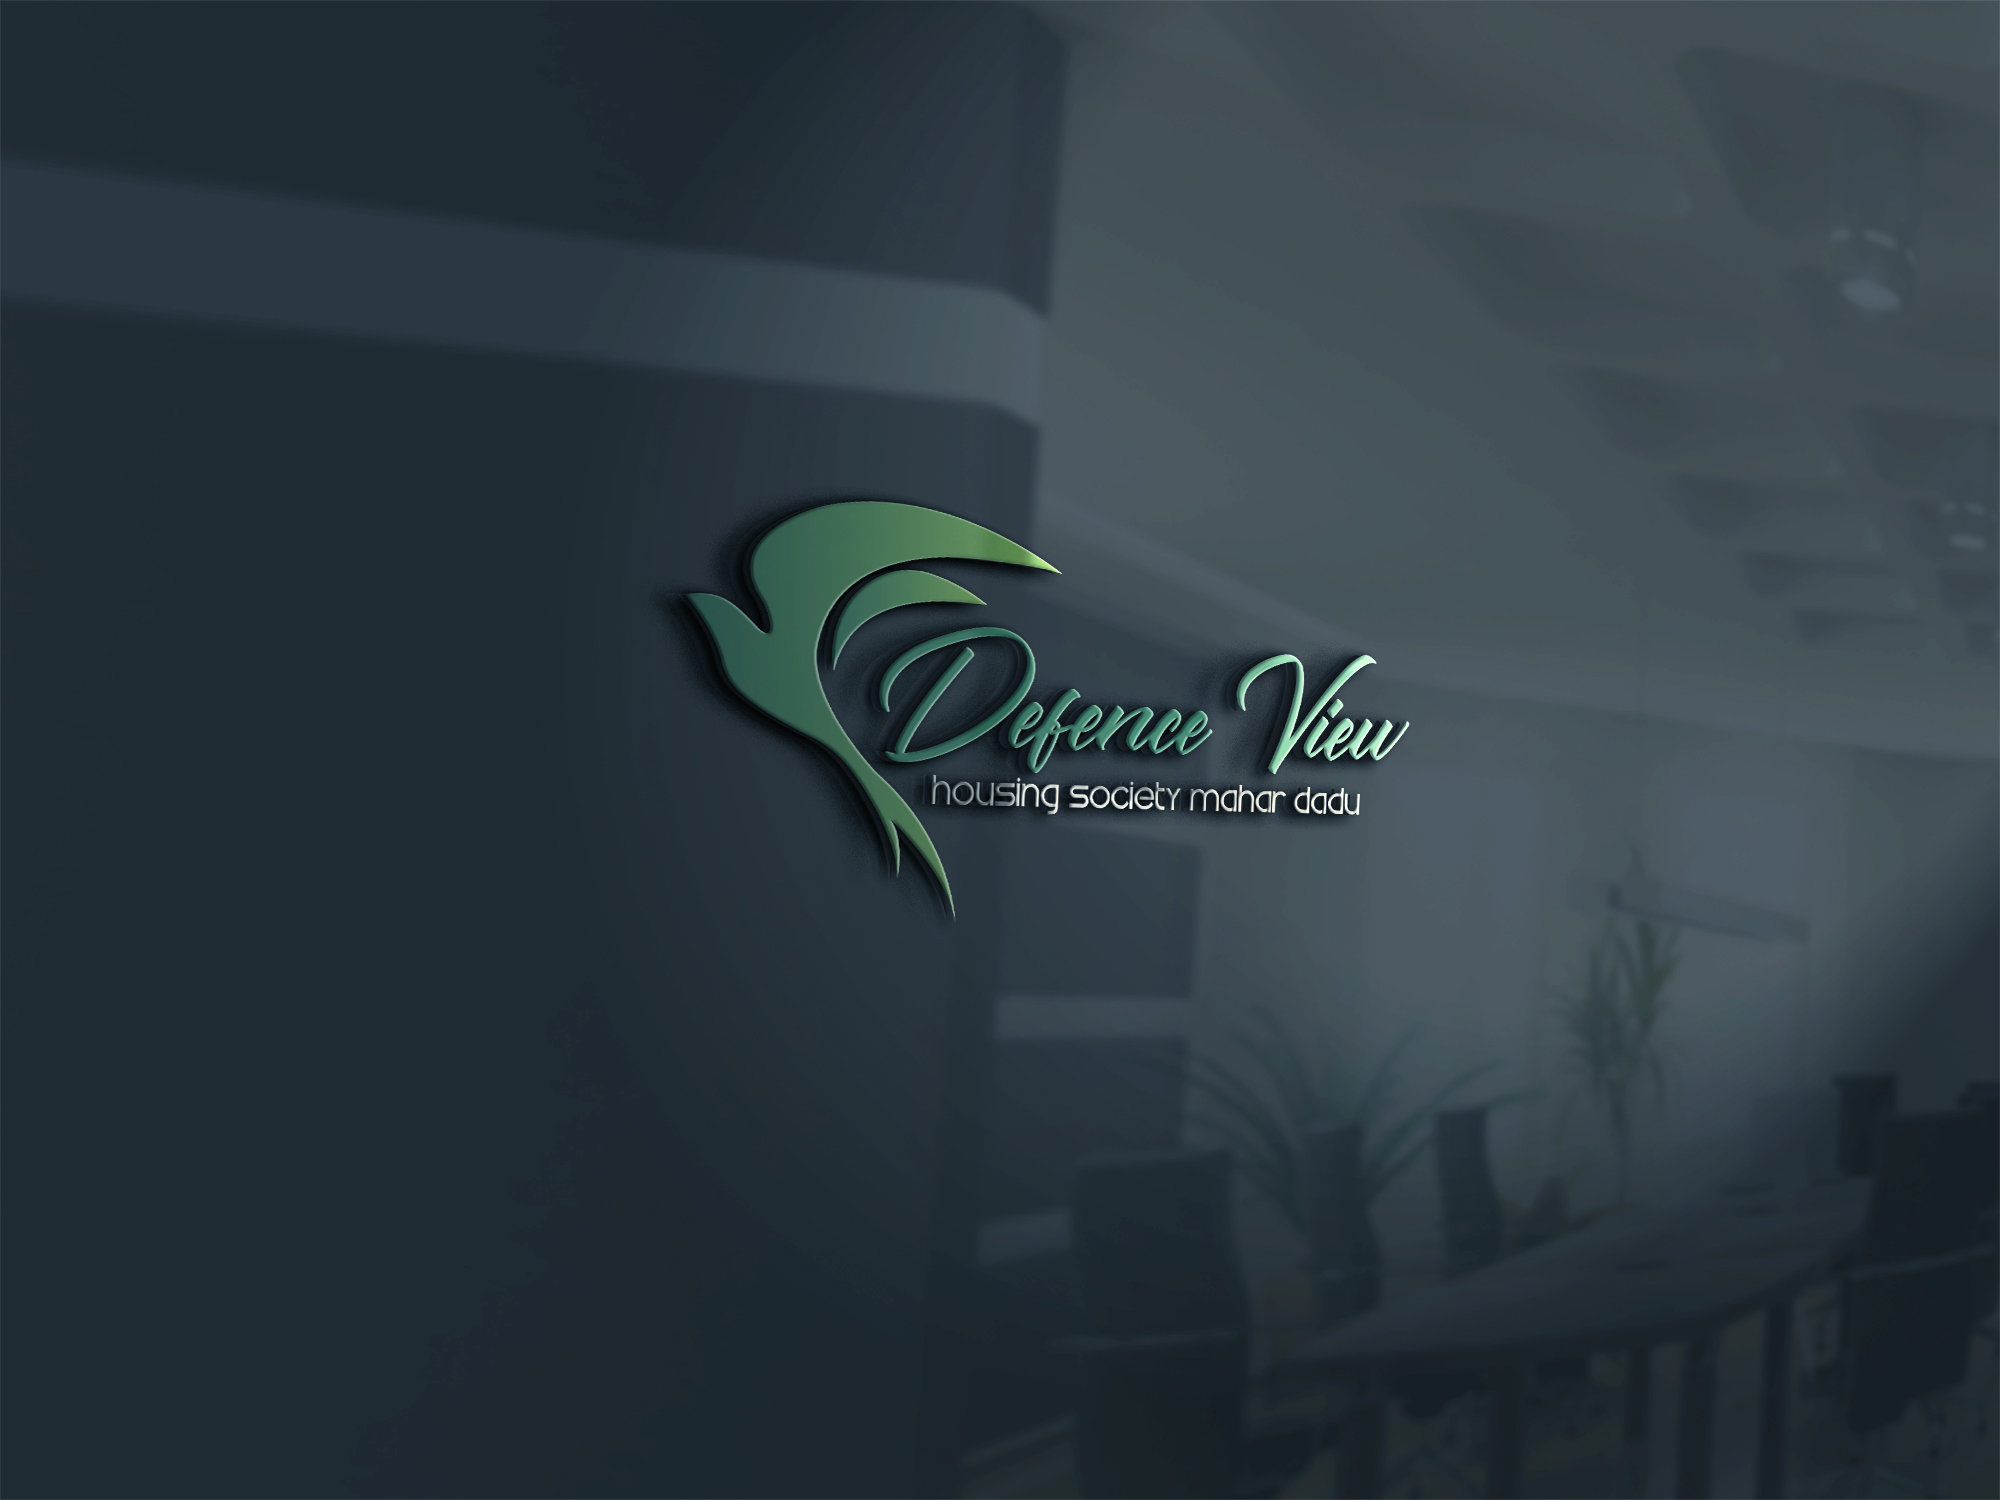 I will design a high quality business logo within 1 day